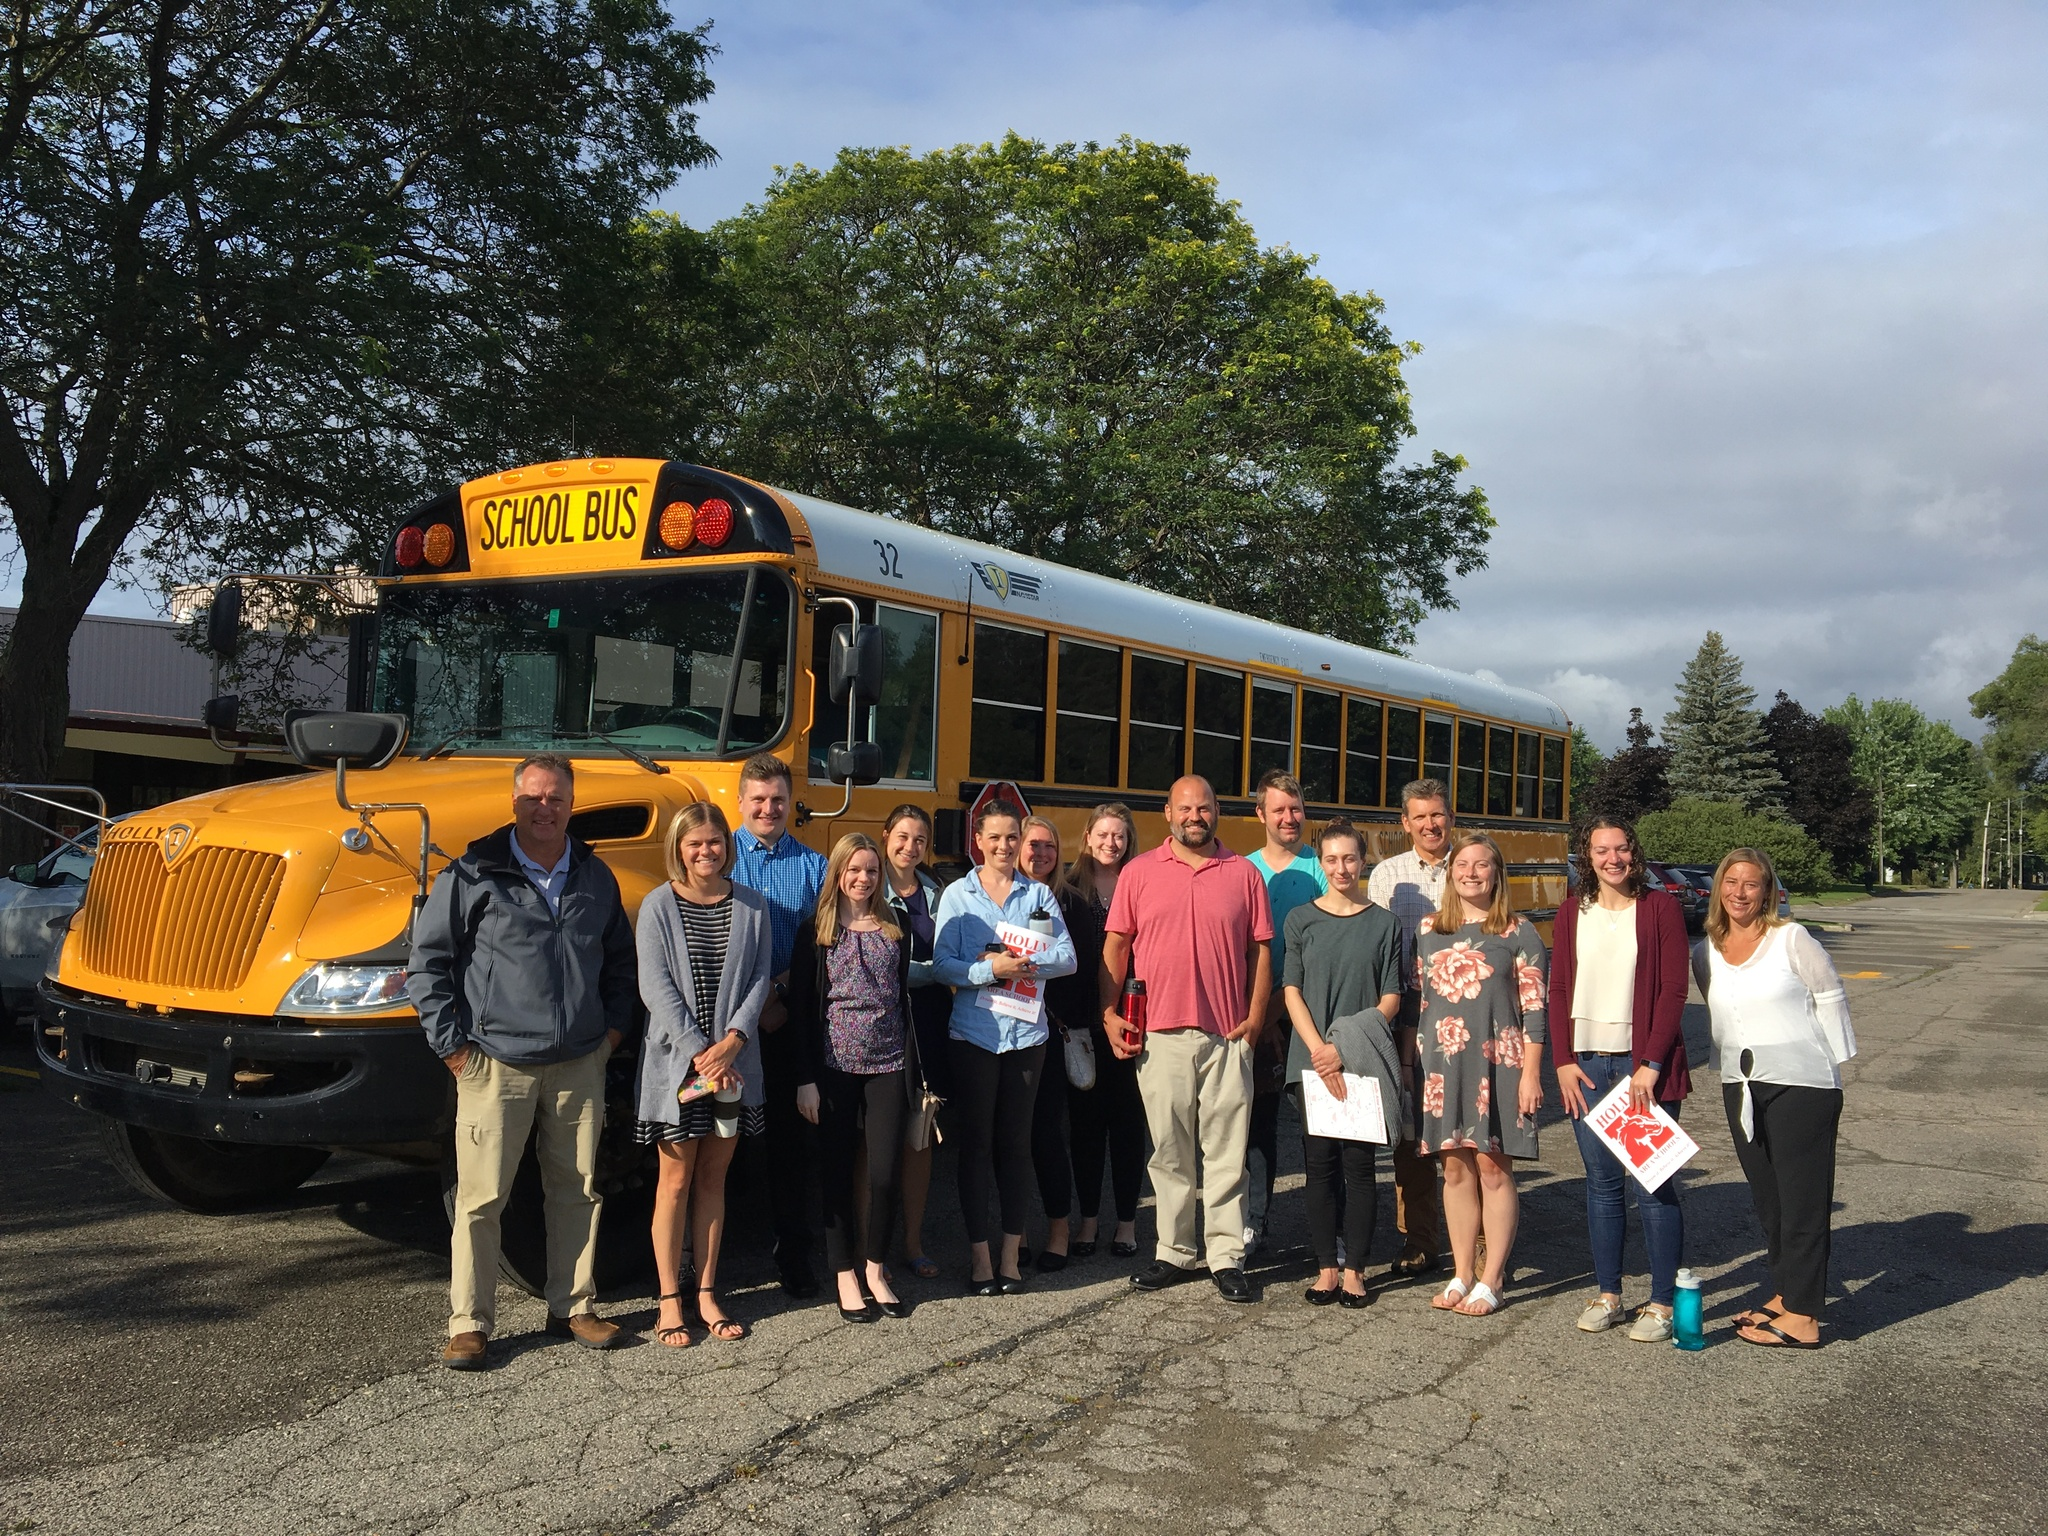 New teachers for 2019-20 with a school bus